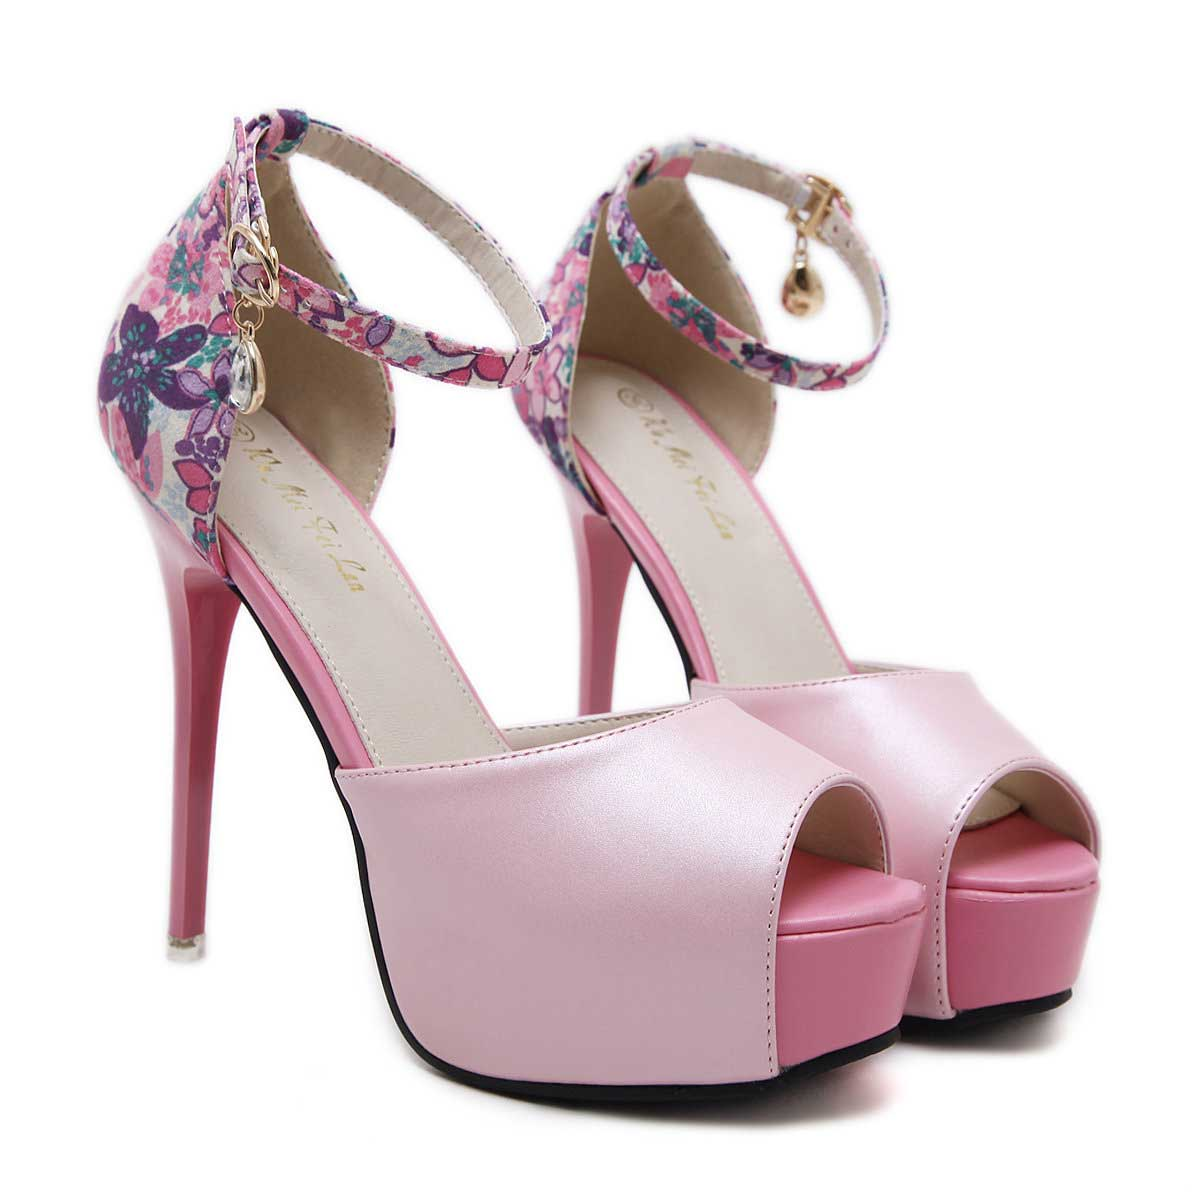 ankle strap wedding shoes women s fuchsia platform stiletto heels wedding shoes with 1313